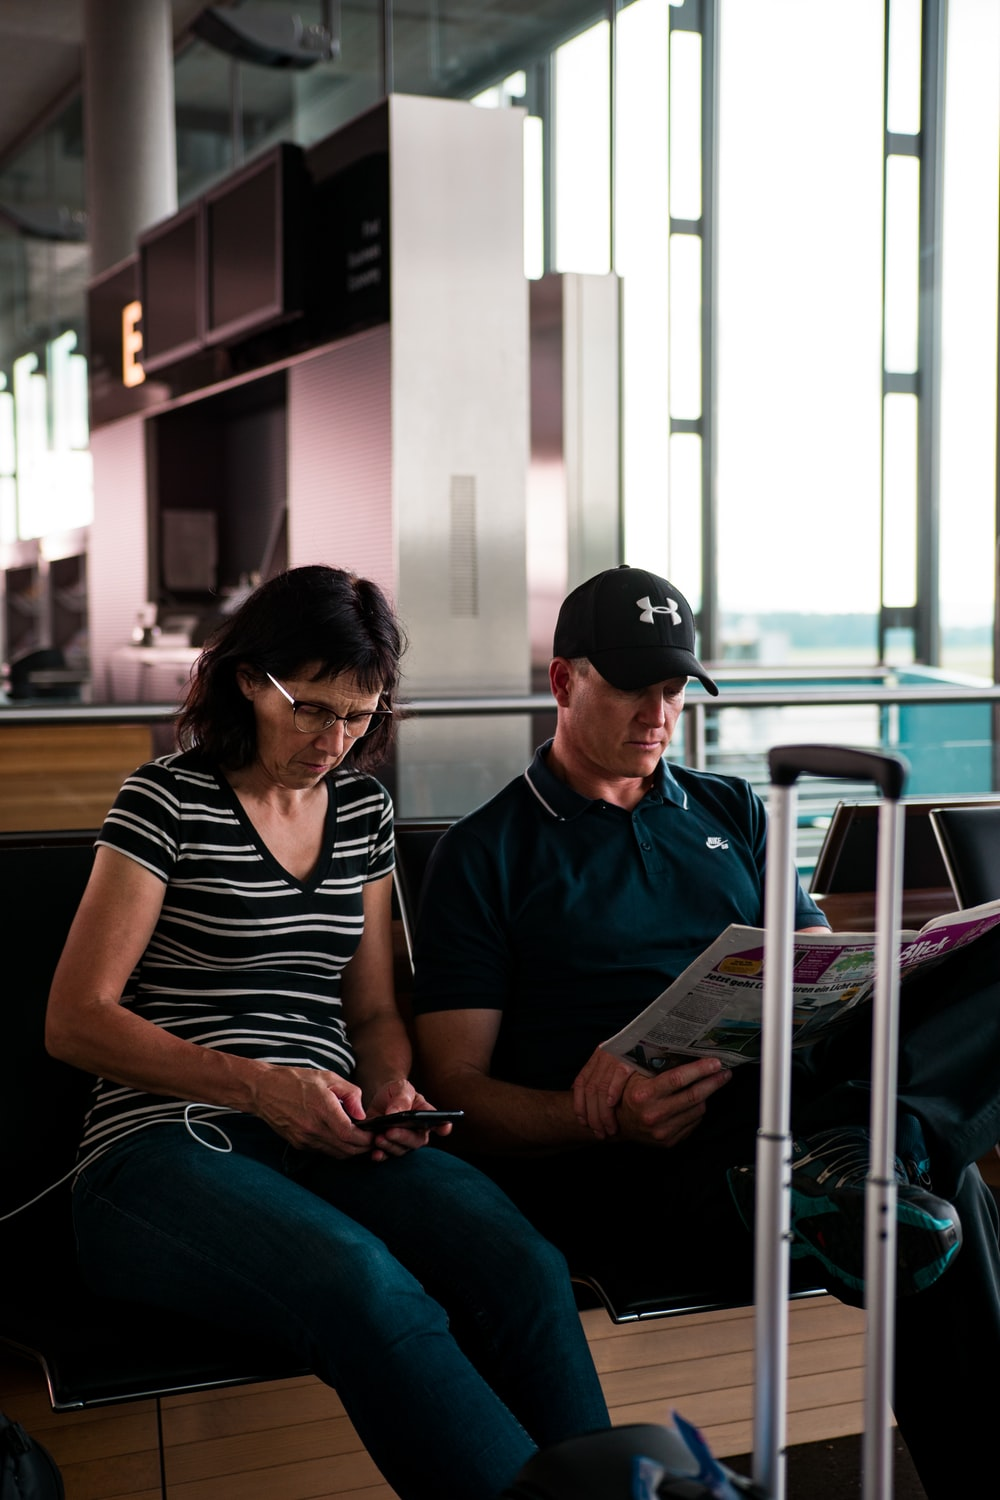 woman fiddling on smartphone beside man with cap reading newspaper